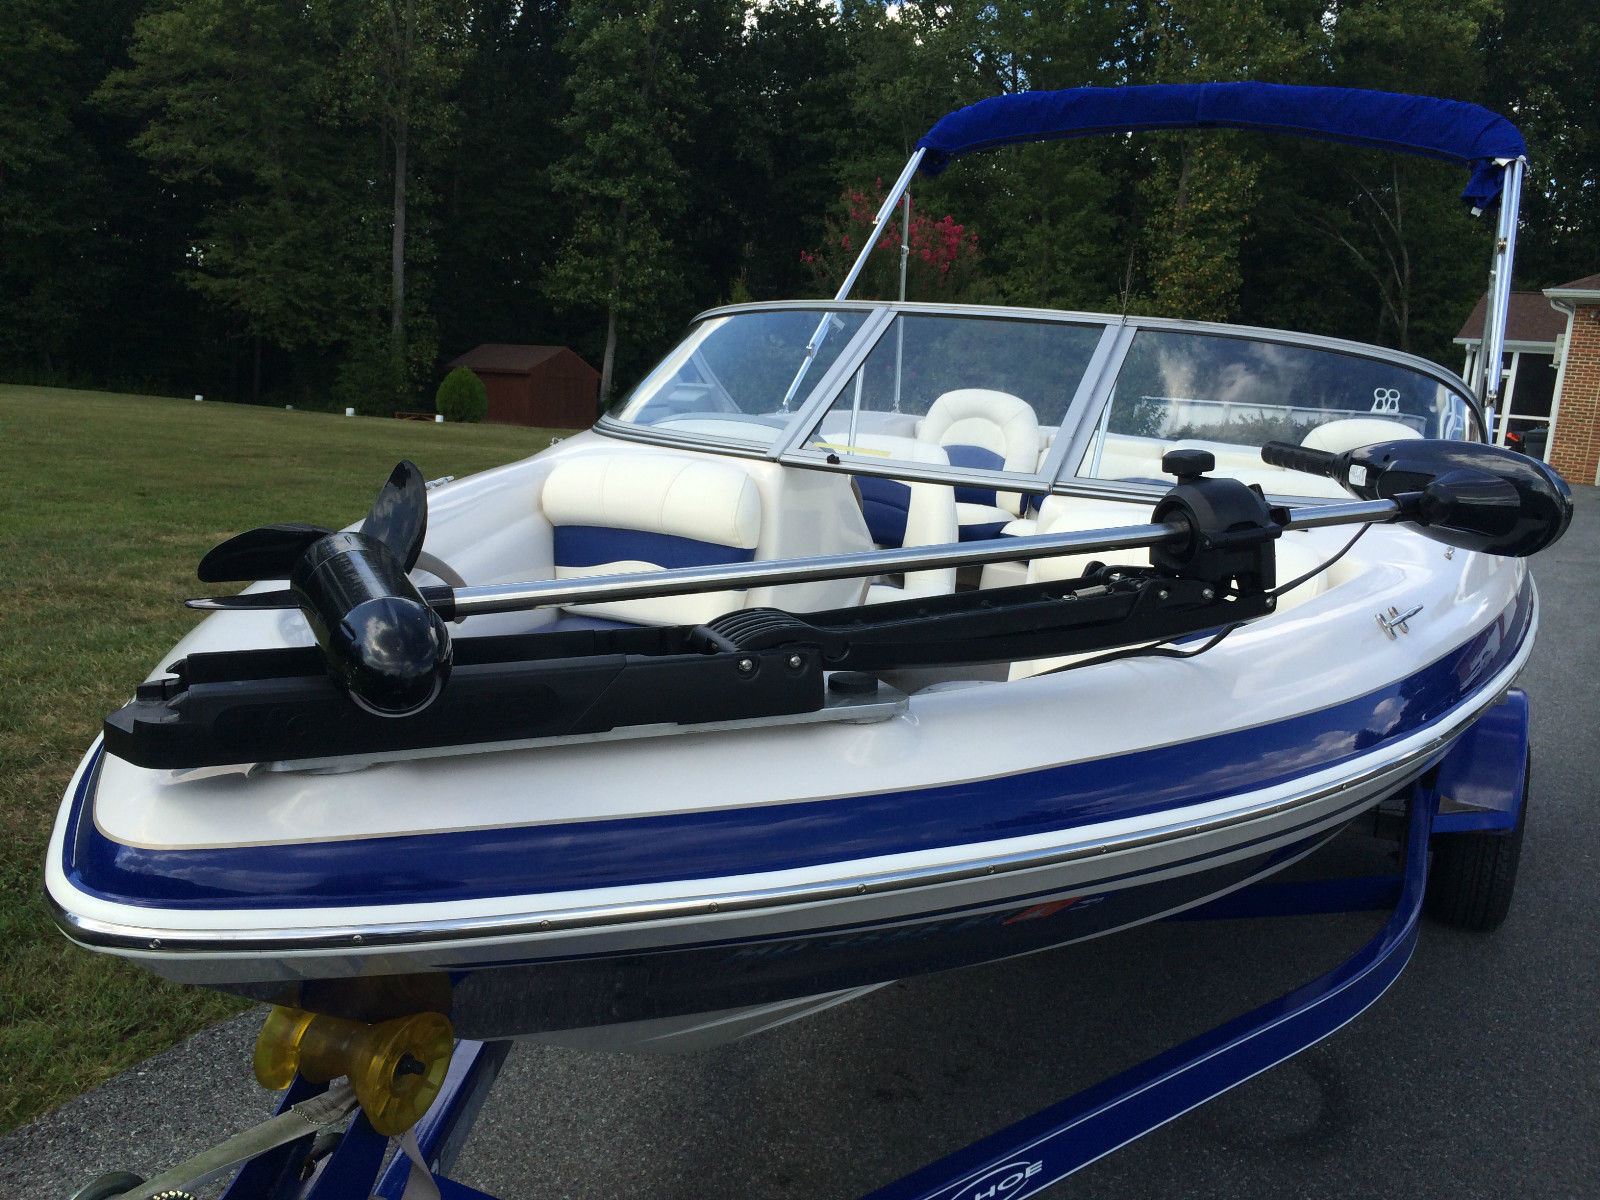 2007 Tahoe For Sale >> Tahoe Q4 Fish/Ski 2007 for sale for $14,000 - Boats-from ...